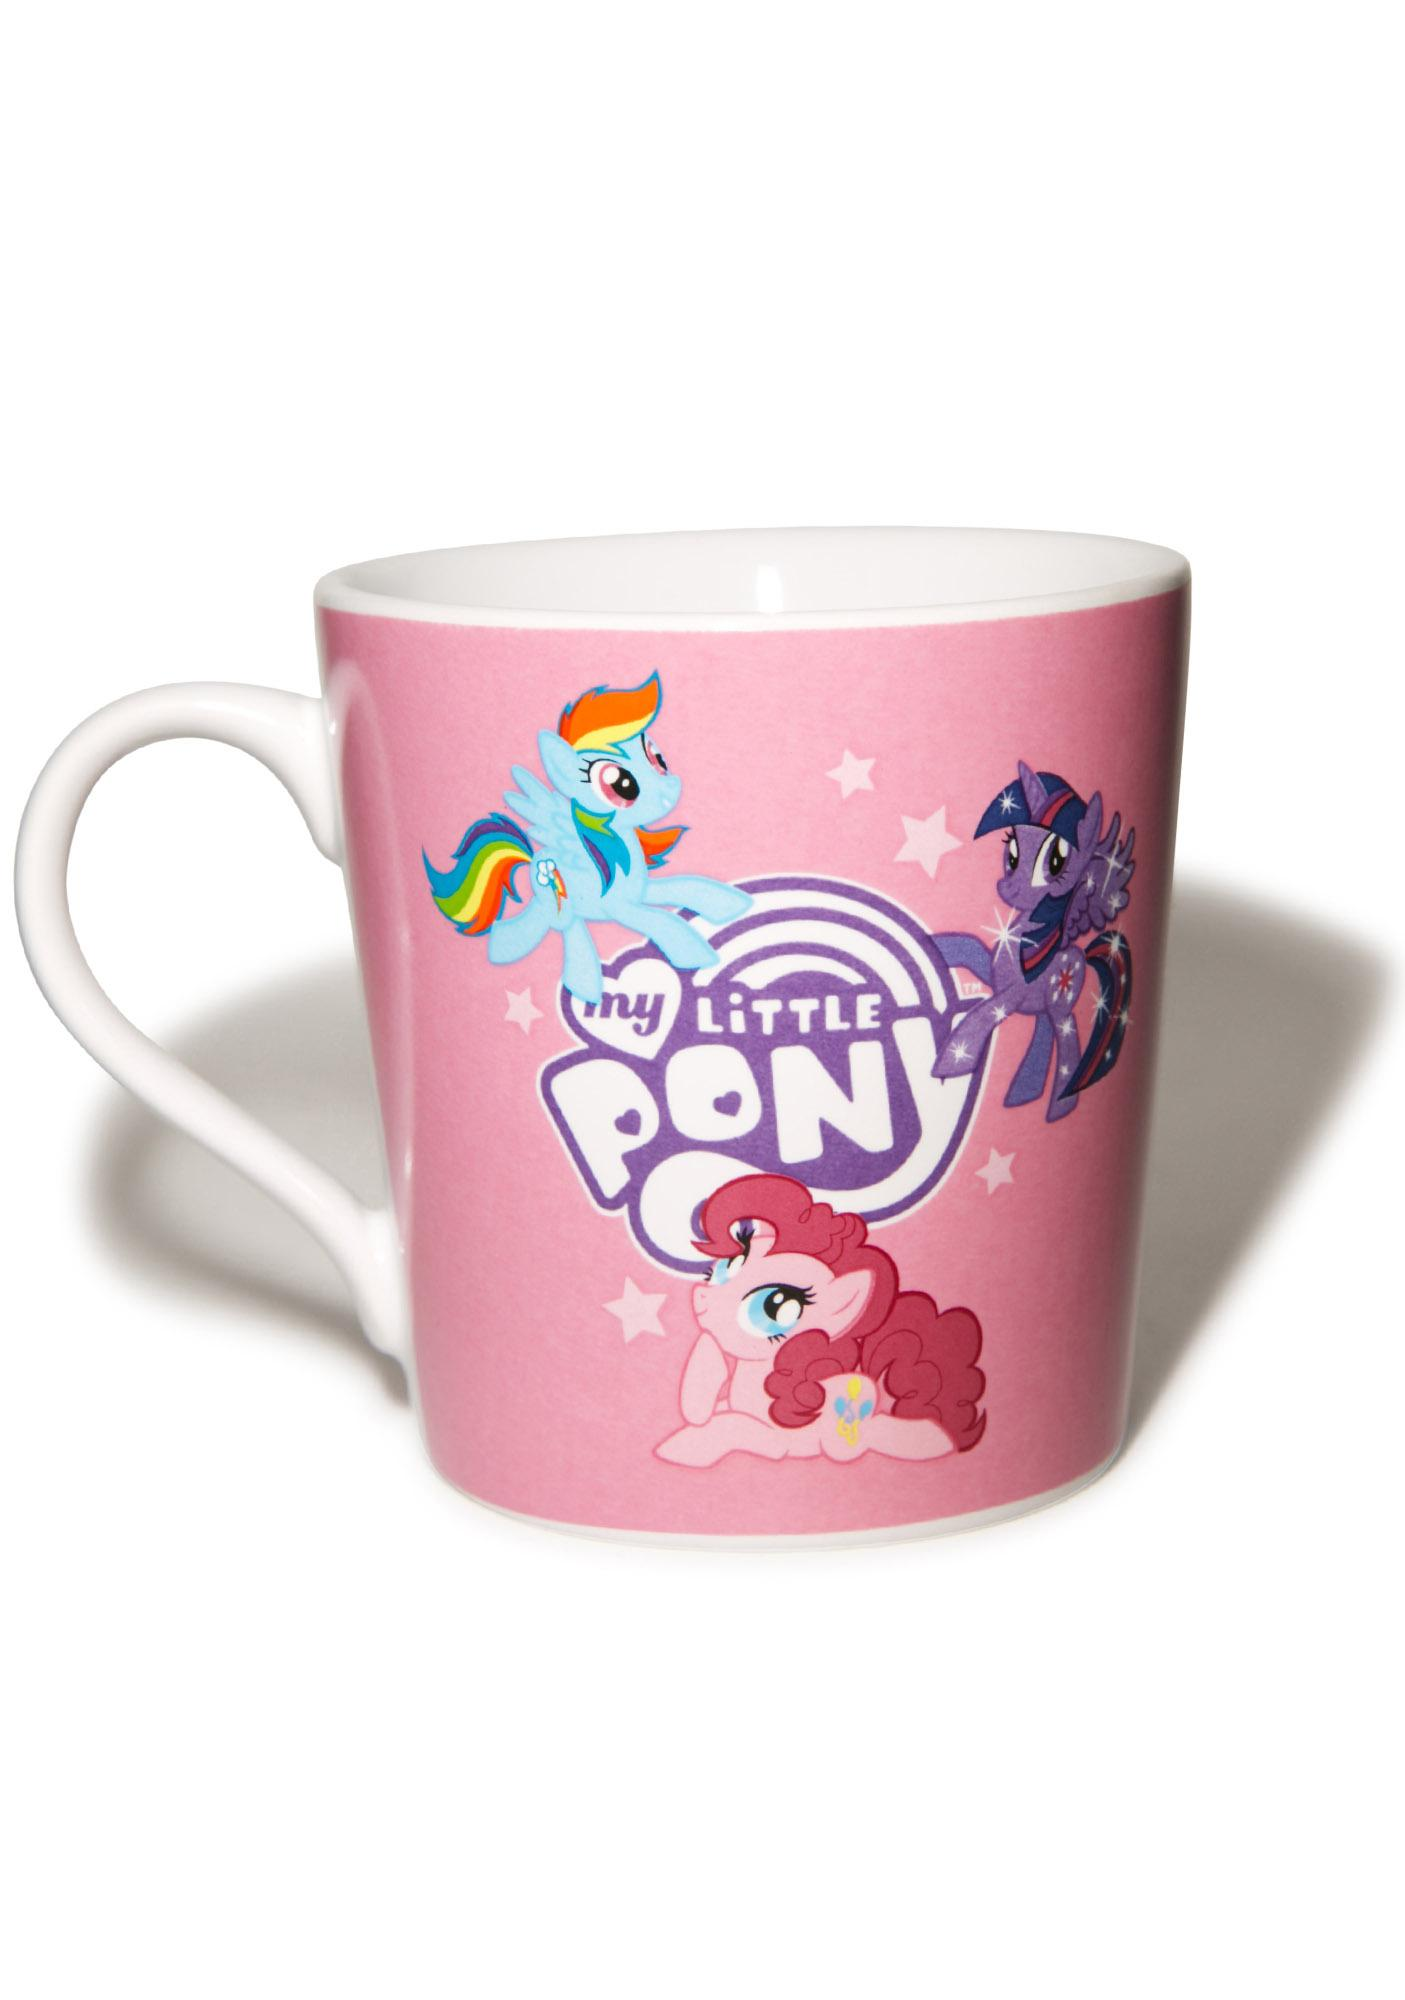 My Little Pony Ceramic Mug